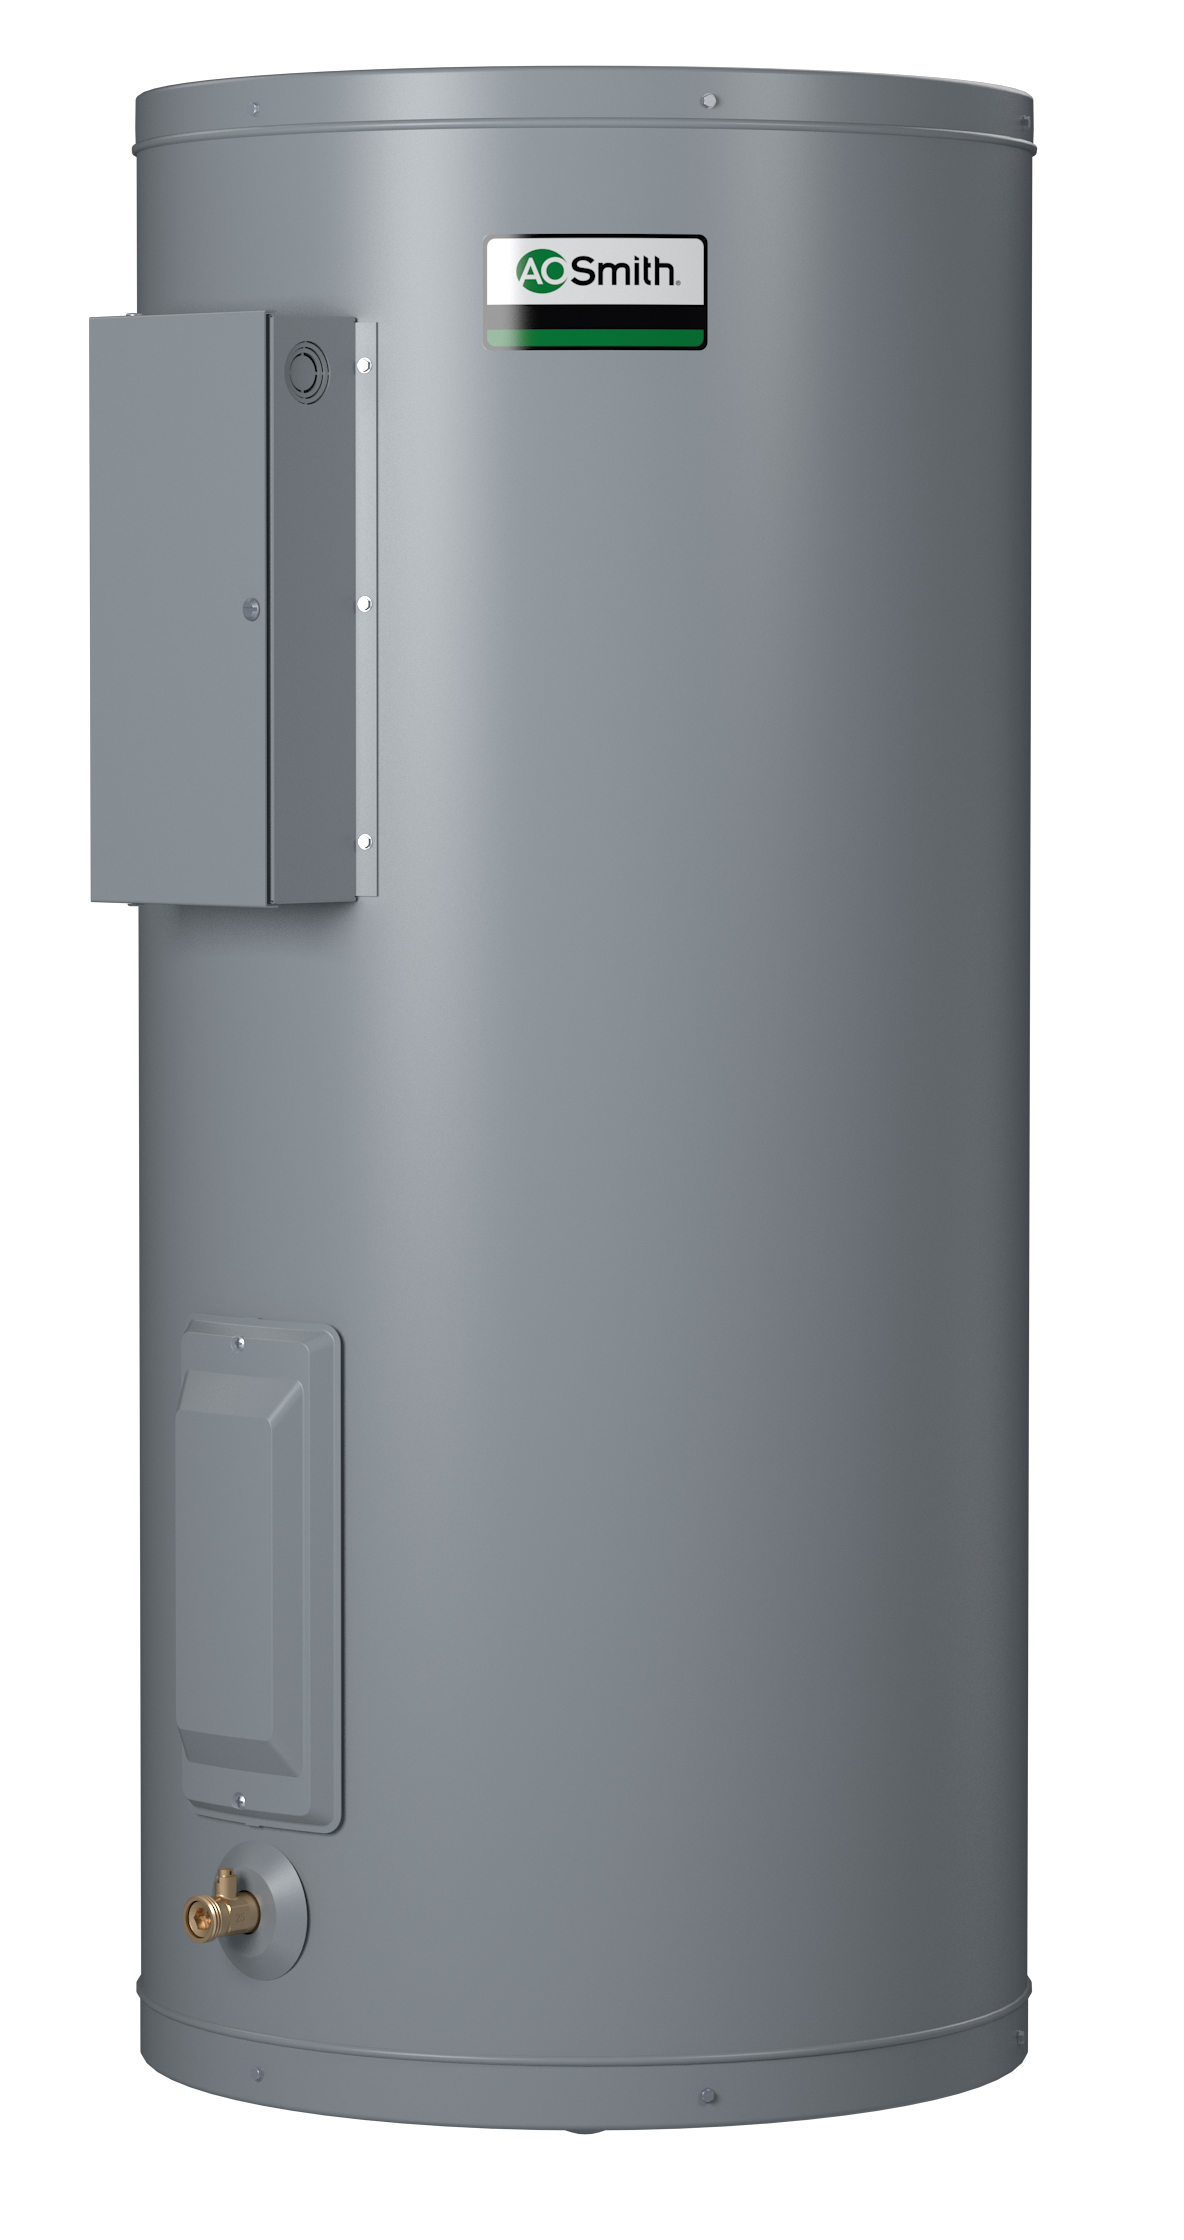 AO SMITH DEL-10S: 10 GALLONS, 1.5KW, 120 VOLTAGE, 12.5 AMPS, 1 PHASE, 1 ELEMENT, NON-ASME COMMERCIAL ELECTRIC WATER HEATER, DURA-POWER